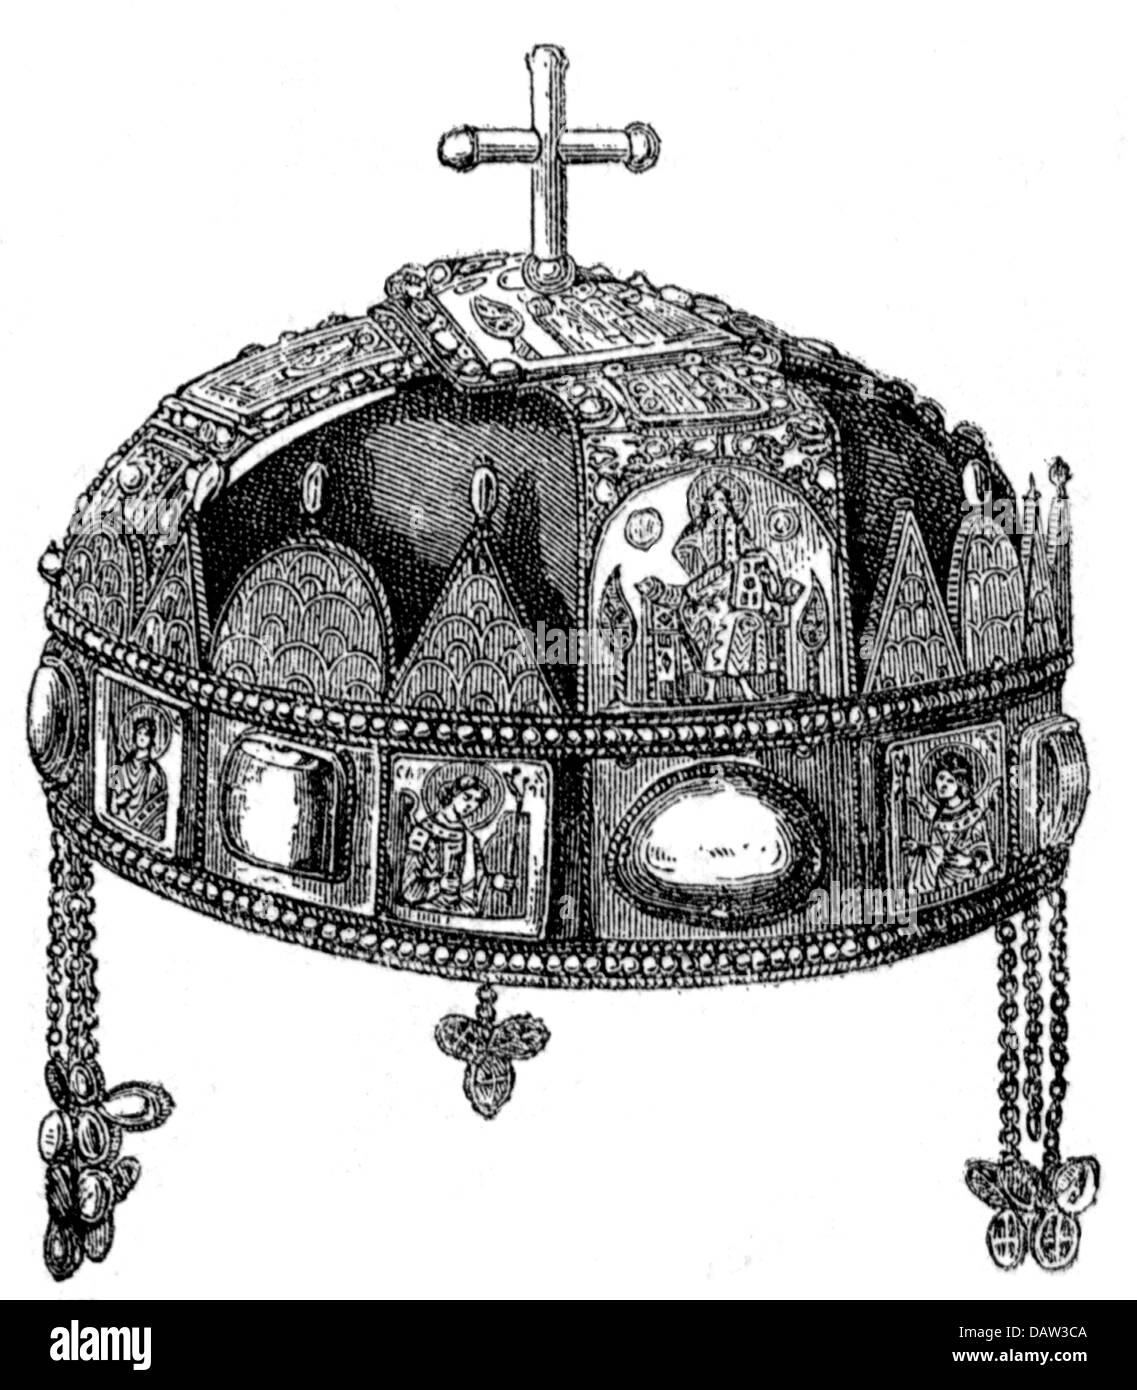 crowns / crown jewels, Hungary, crown of Saint Stephen, second version, 1270 - 1272, Additional-Rights-Clearences - Stock Image